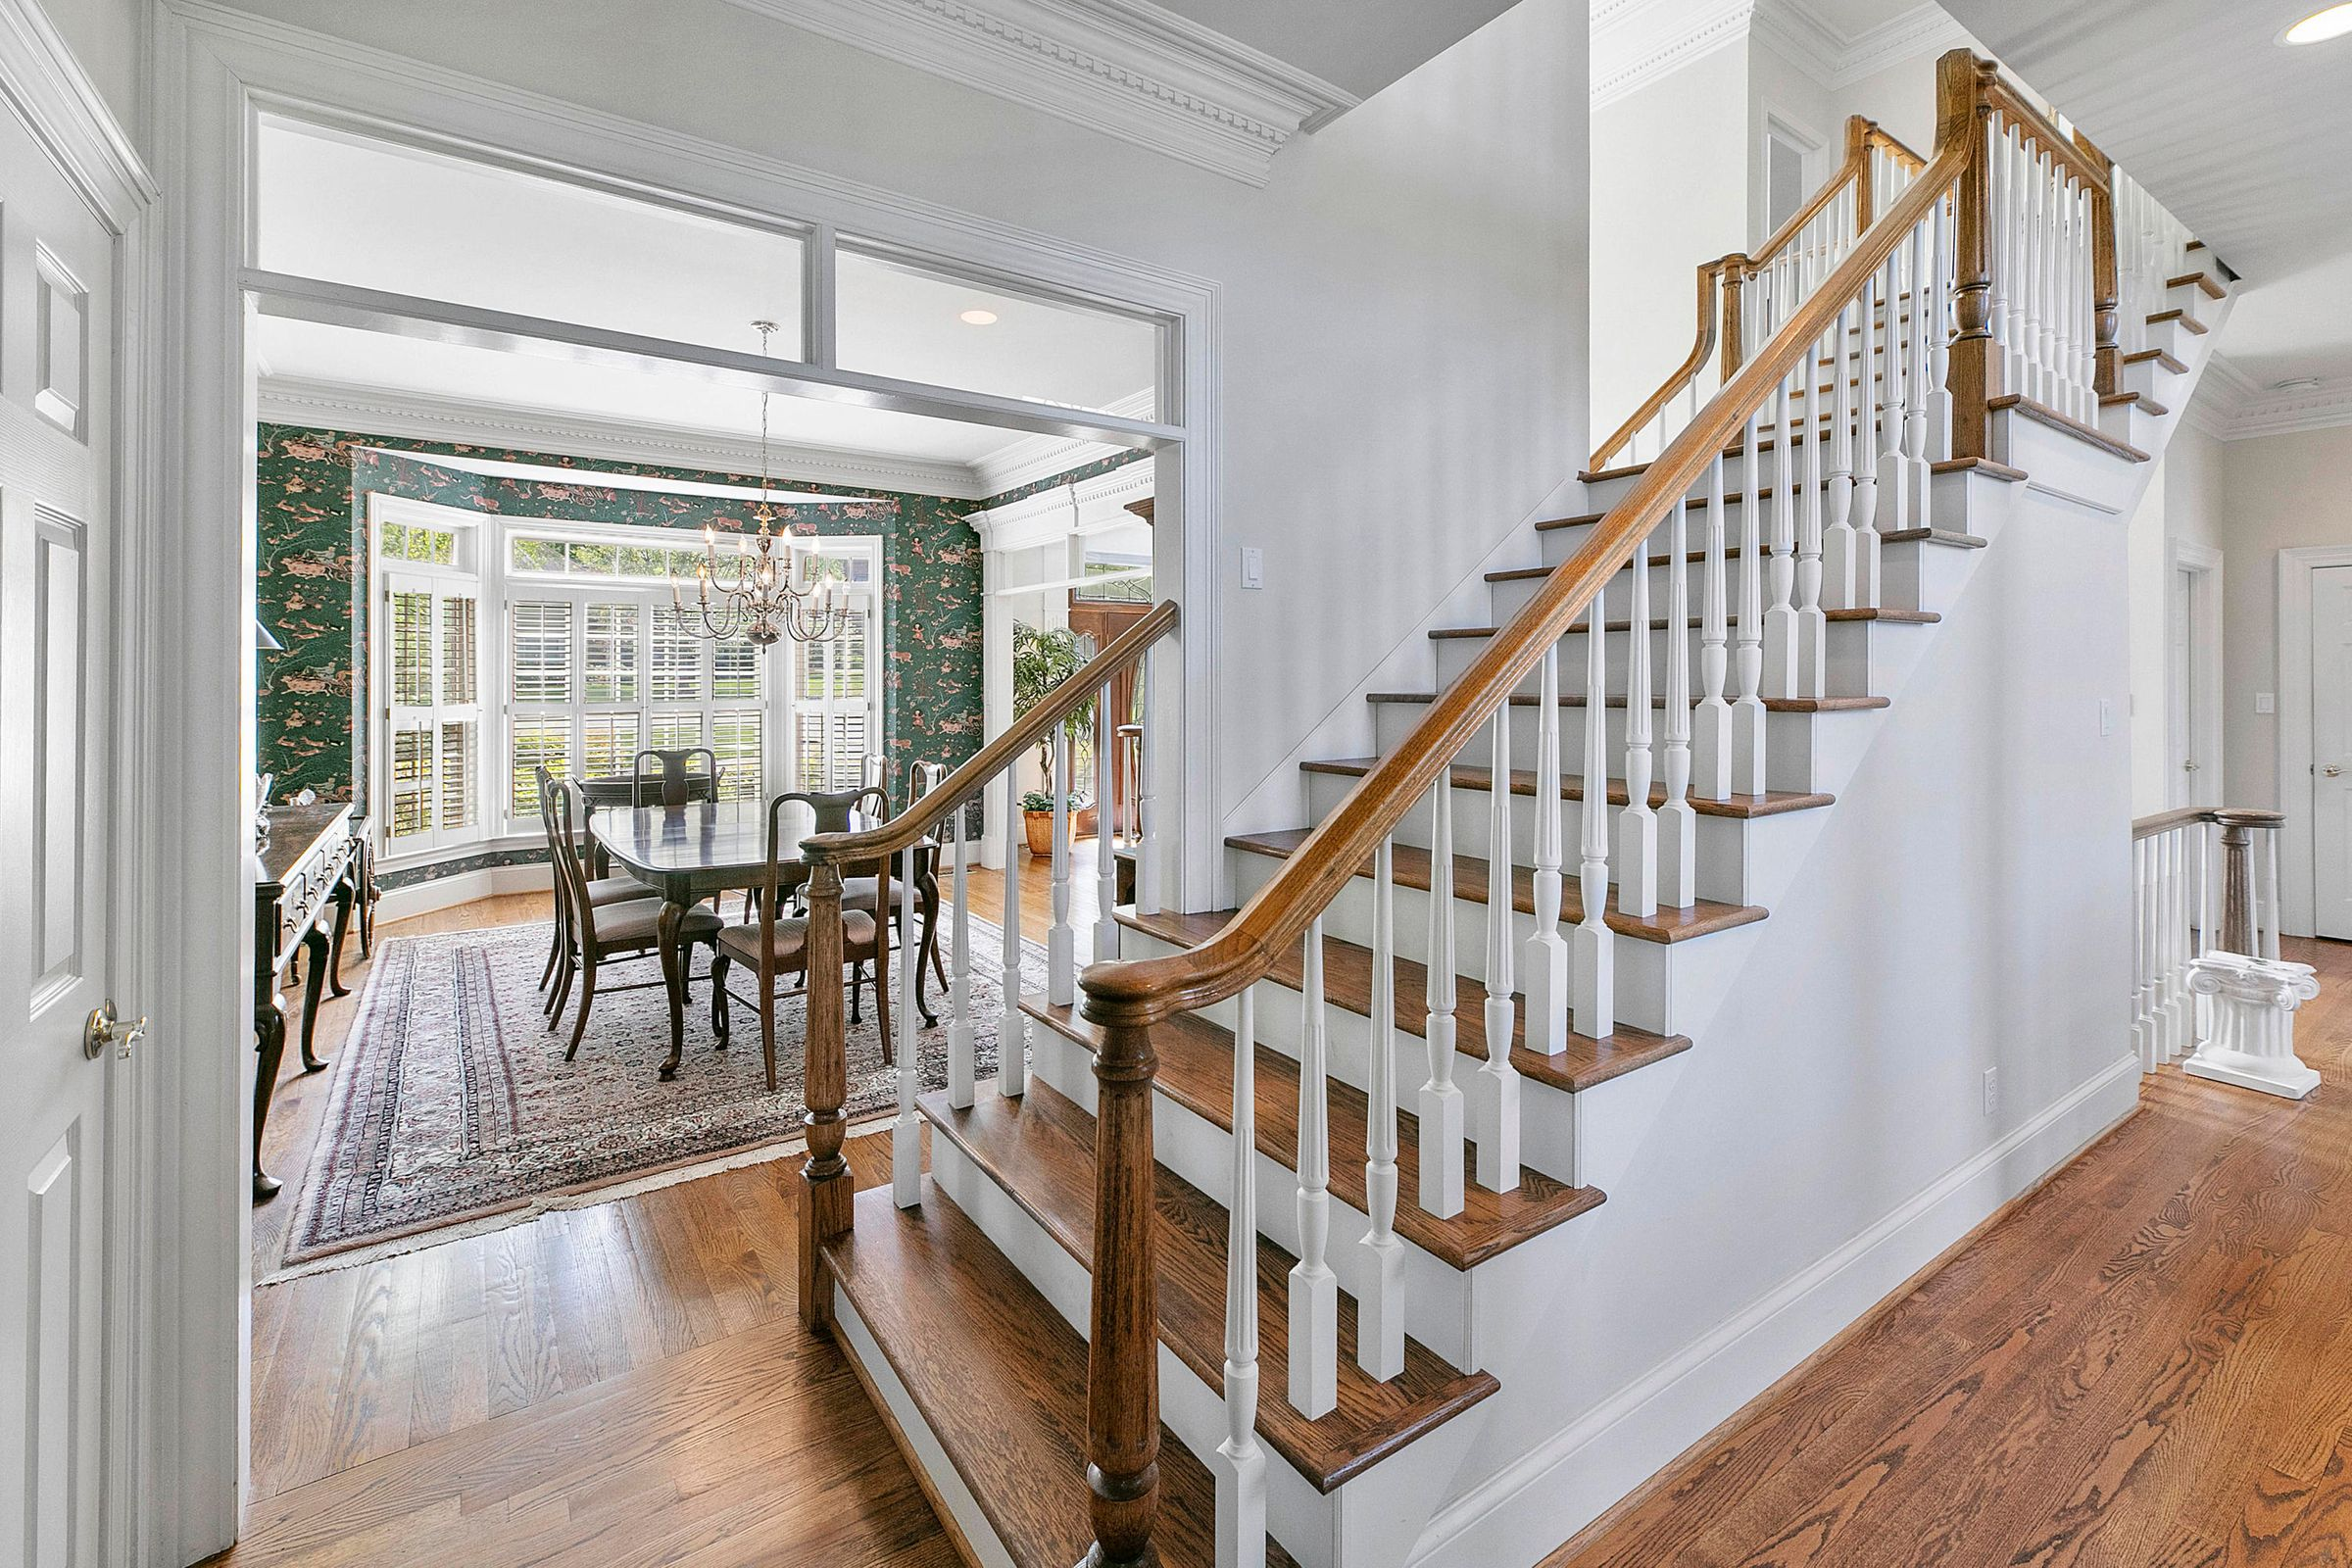 2nd staircase